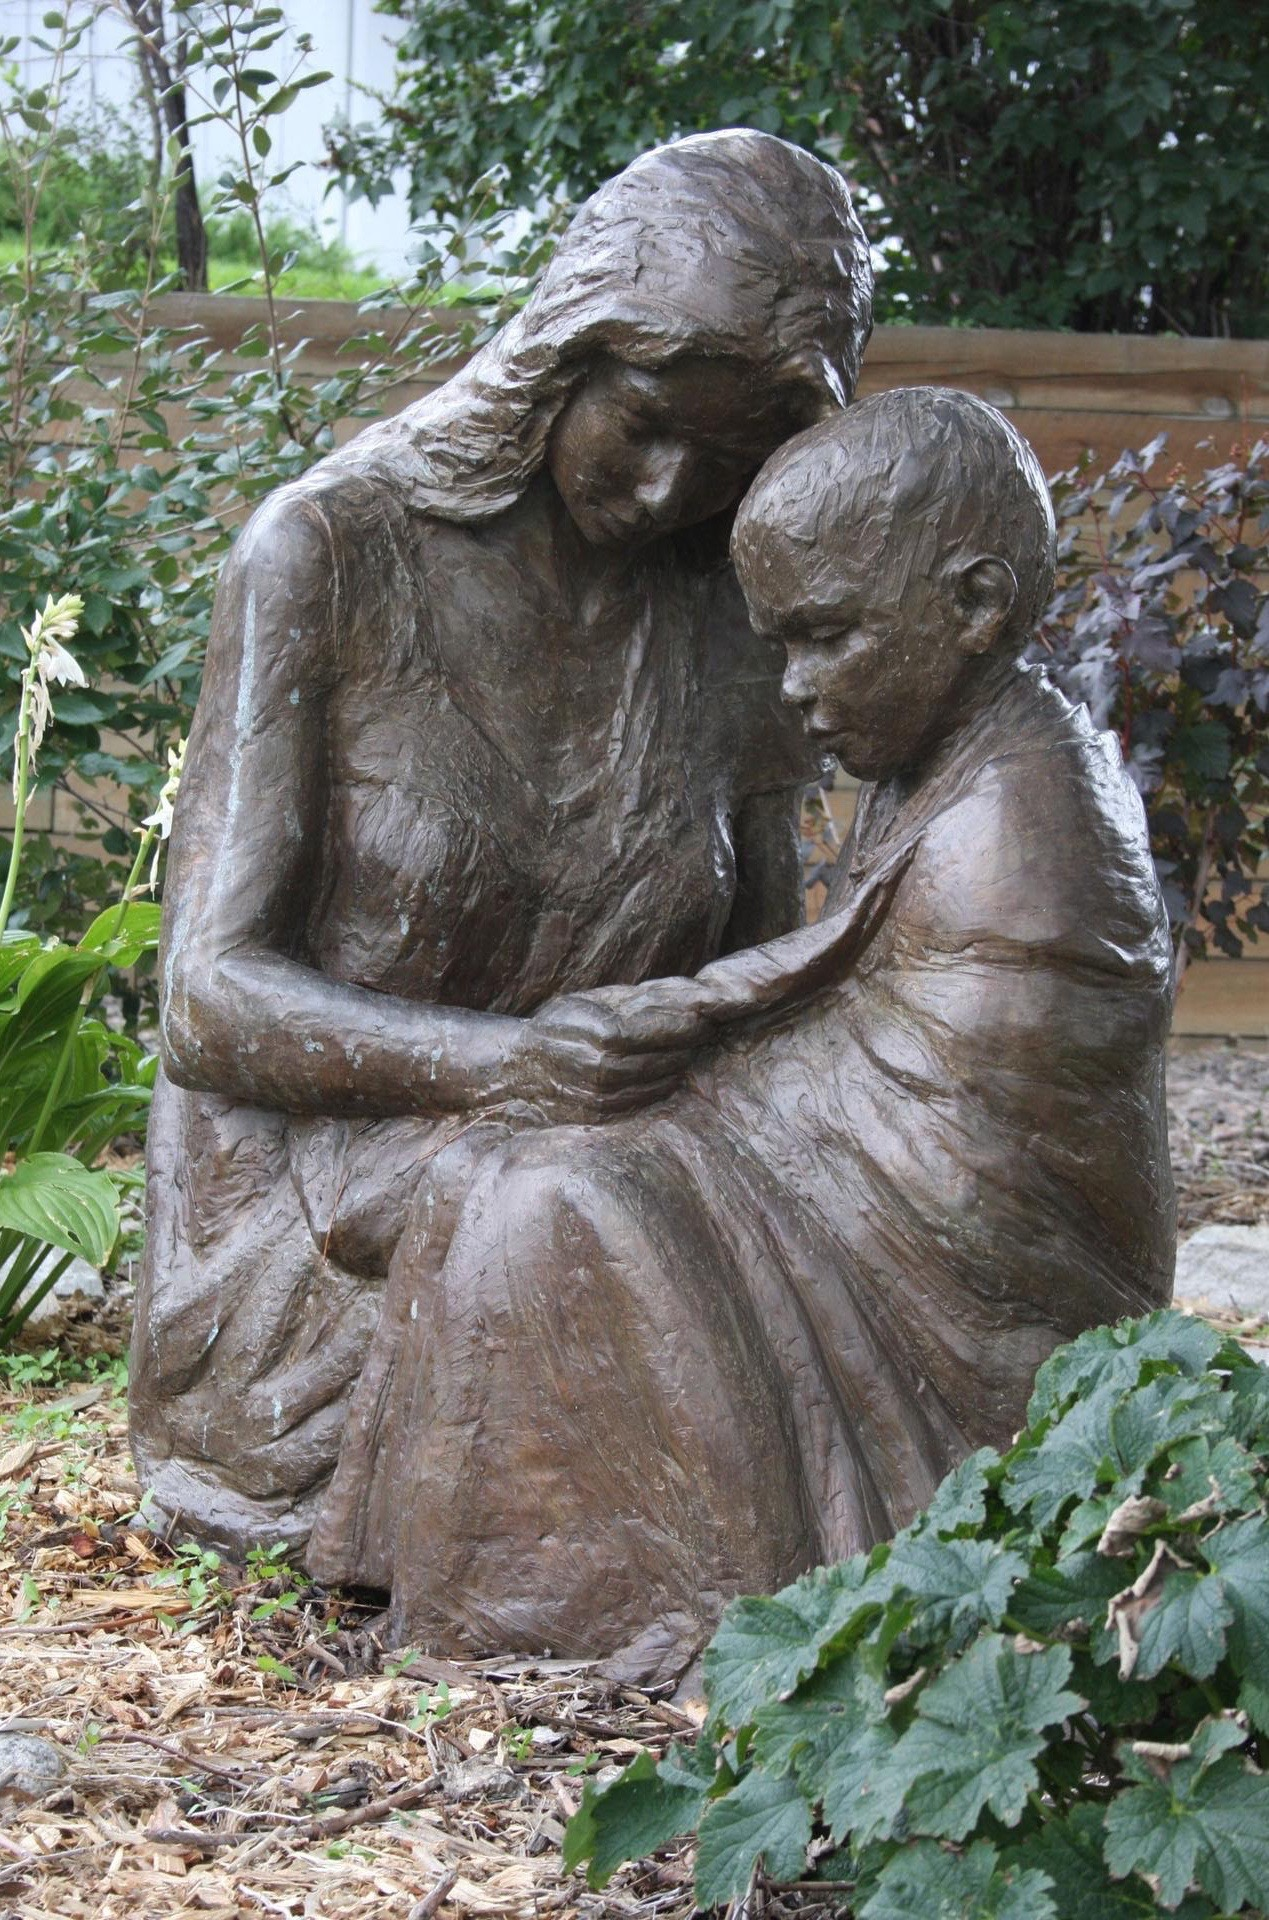 "Karen Crain's piece, to be installed by April 9, 2016, in the Outdoor Sculpture Exhibit by Art Around the Corner in St. George, is entitled ""Comforter."" A mother kneeling and holding her blanket-shrouded child represents the fleeting moments, the healing touches and the bond of tenderness. St. George, Utah 